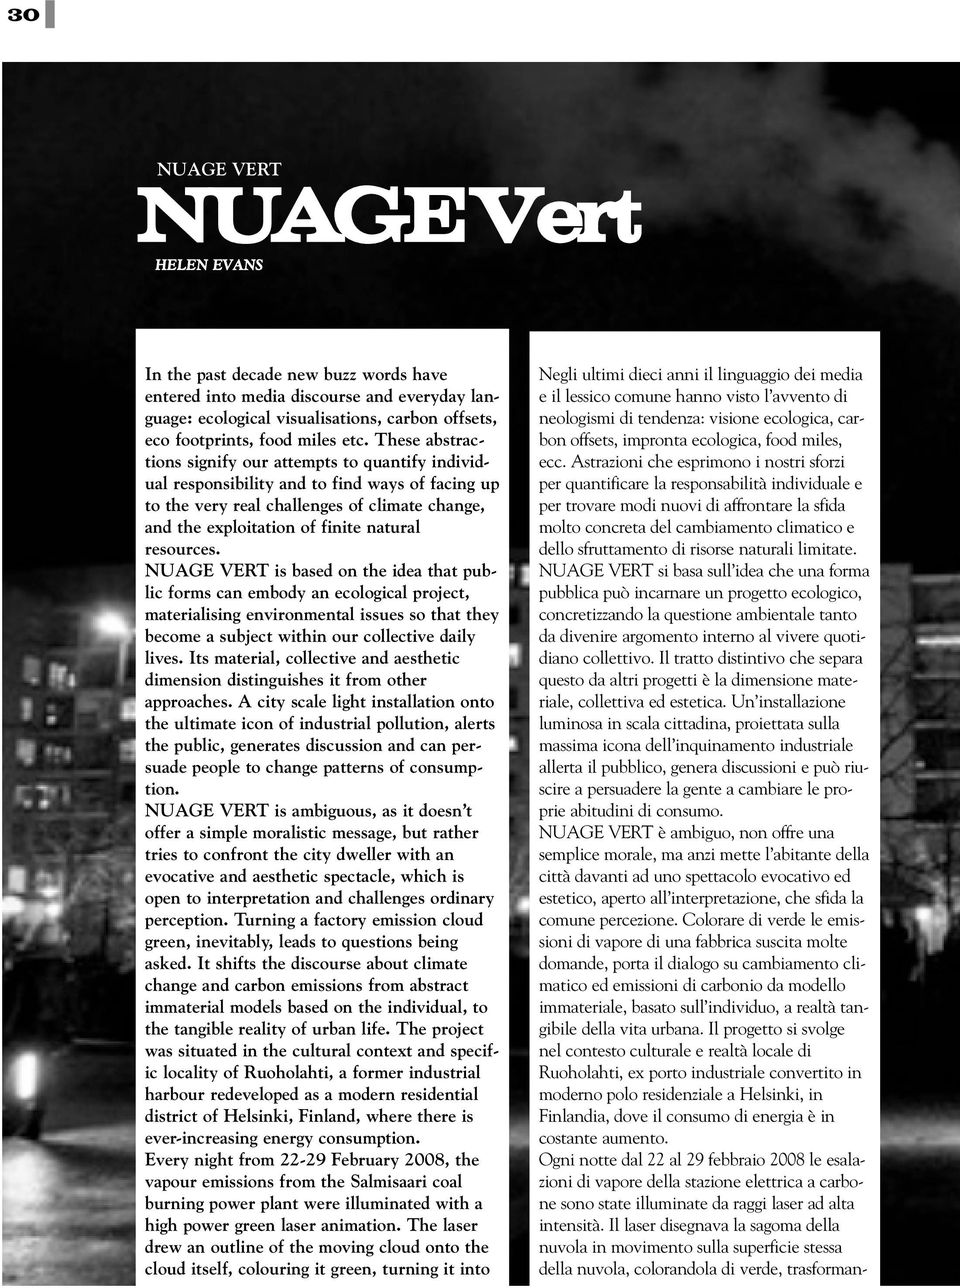 resources. NUAGE VERT is based on the idea that public forms can embody an ecological project, materialising environmental issues so that they become a subject within our collective daily lives.